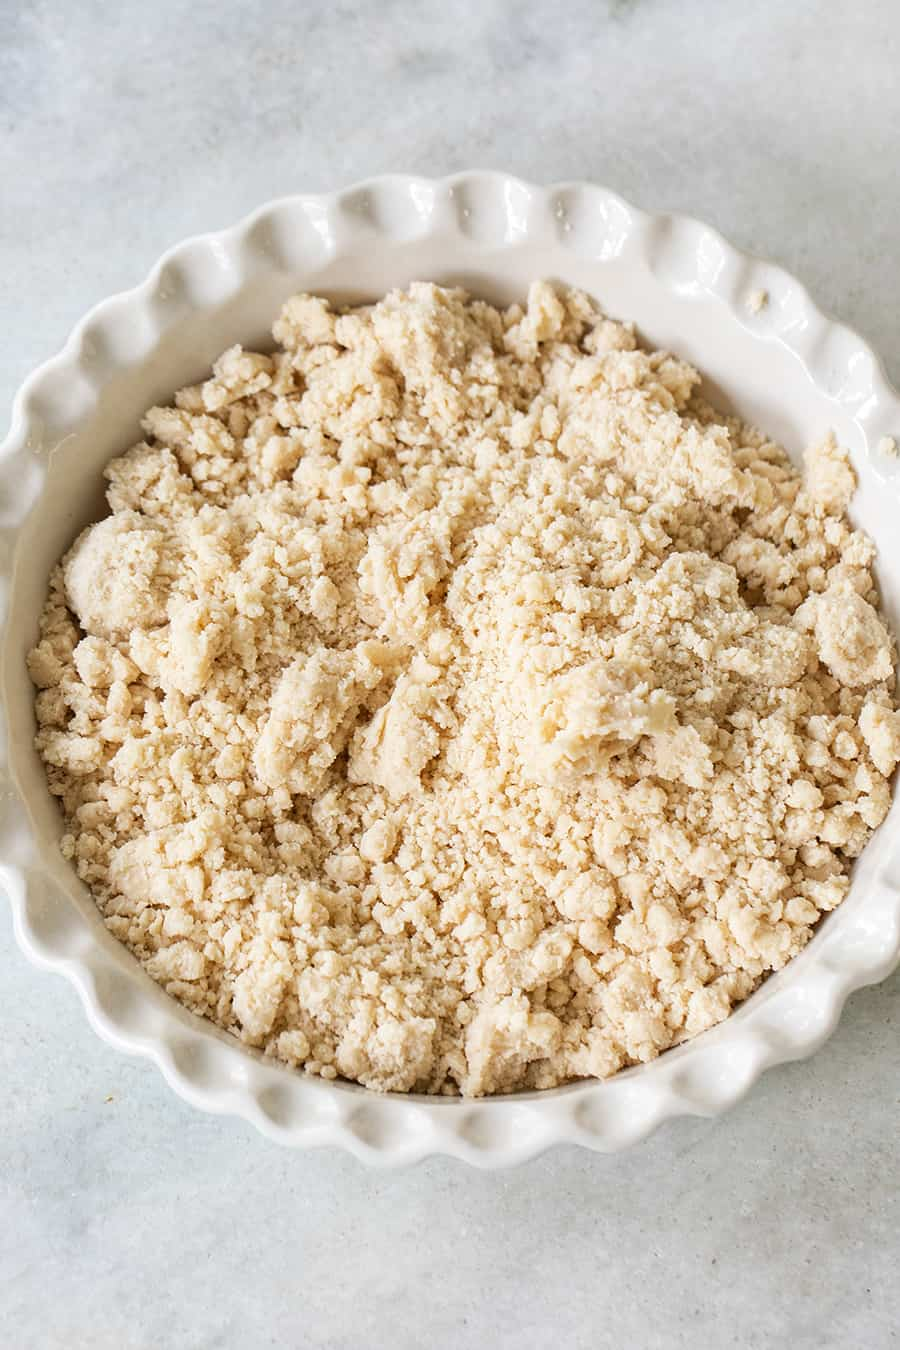 Cookie pie crust in a white pie dish.